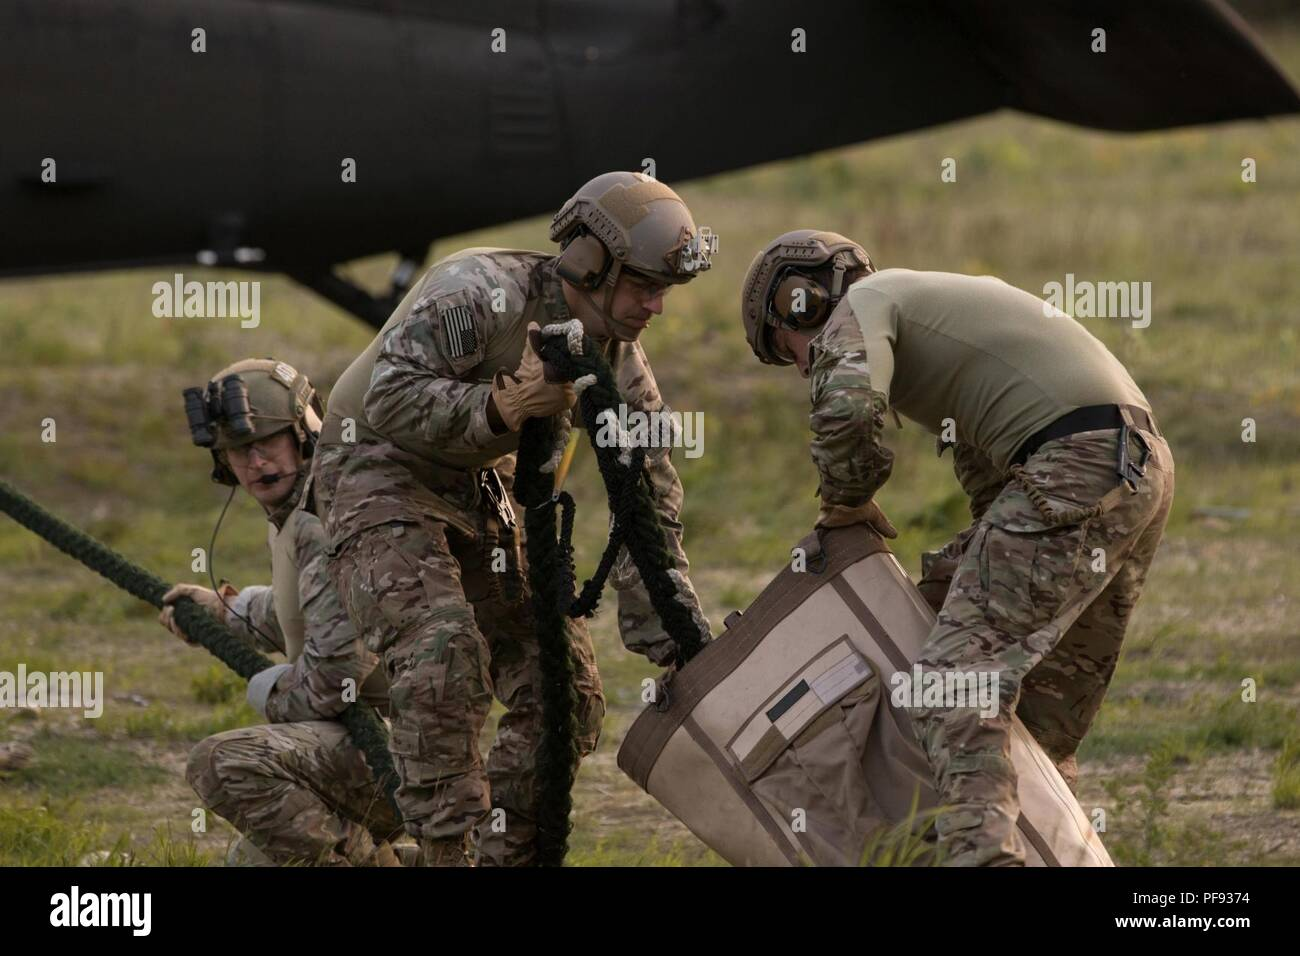 BOURNE, Mass  – Soldiers from the 20th Special Forces Group